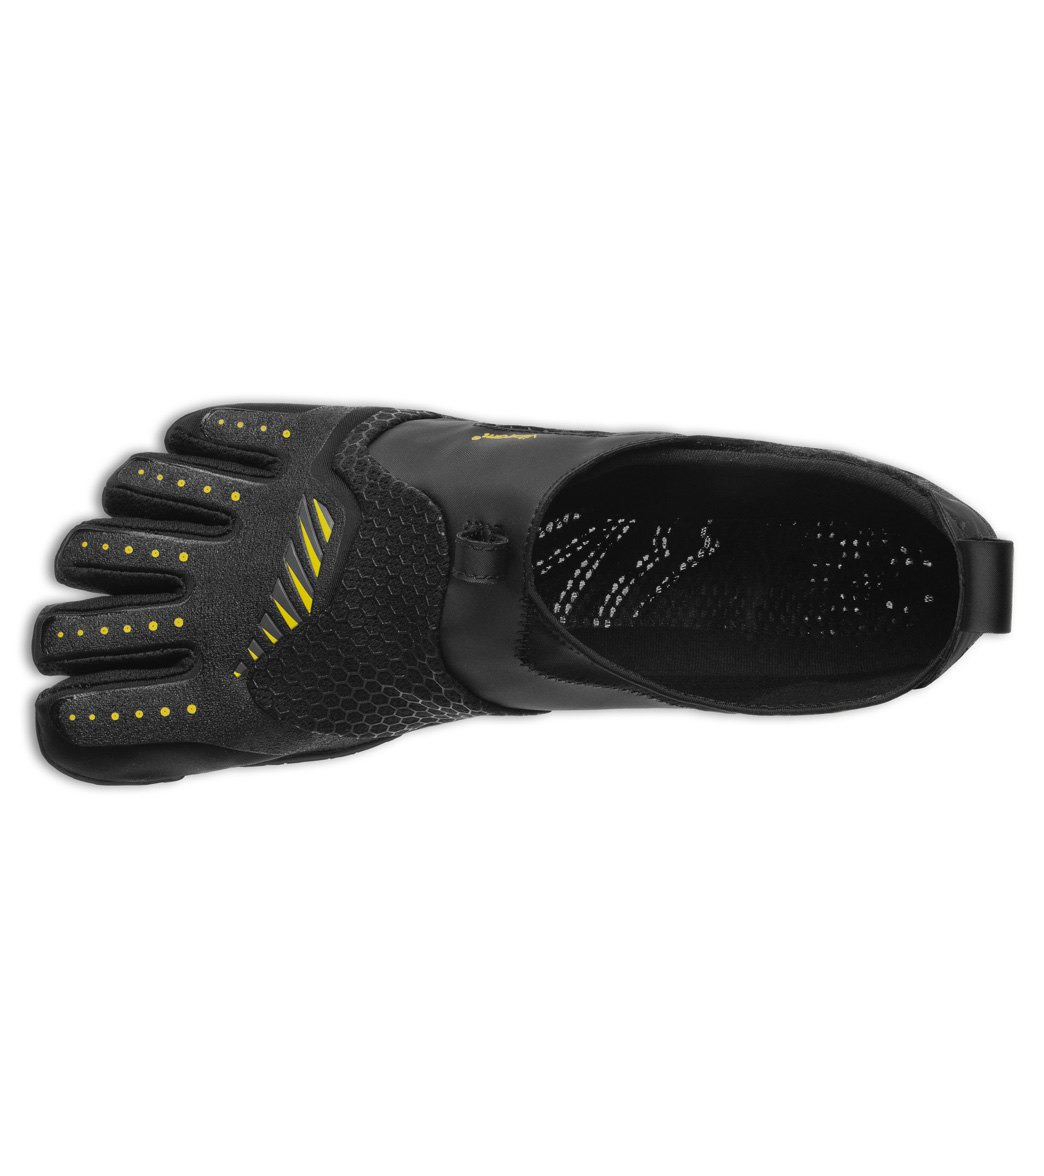 Vibram Fivefingers Men's Signa Water Shoes at SwimOutlet.com ...